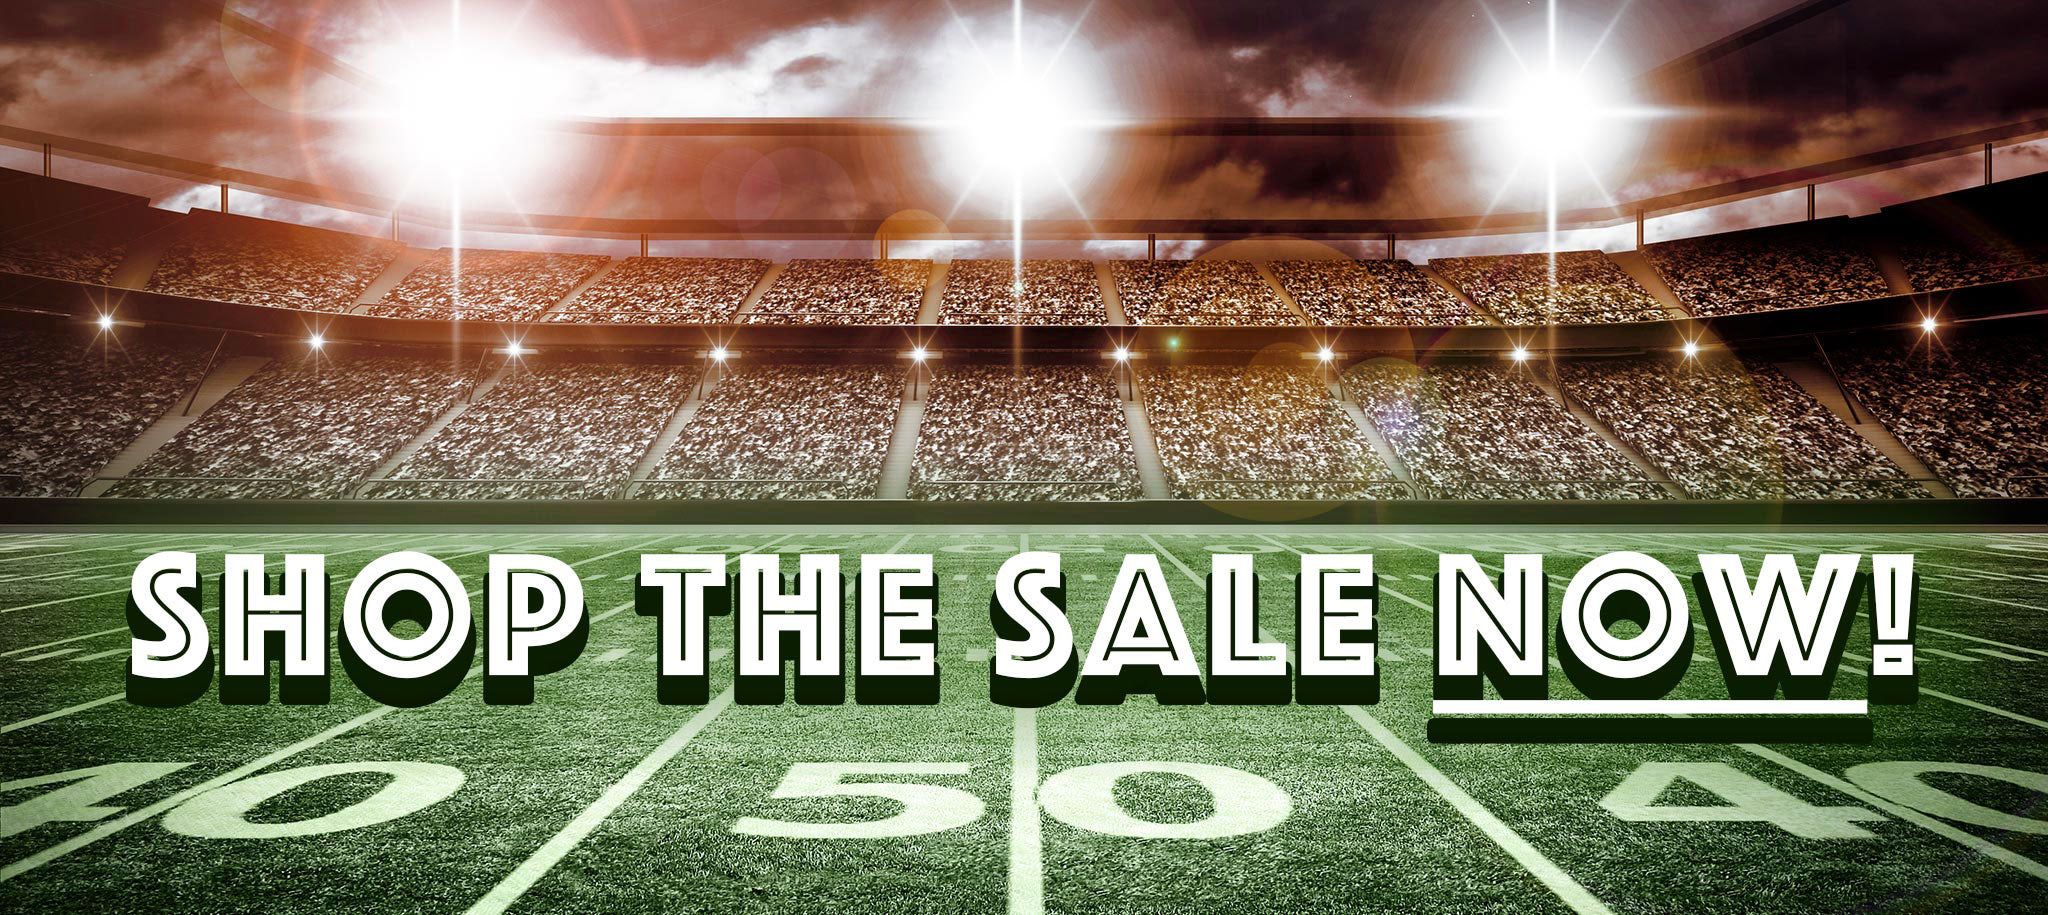 Big Game Football Furniture and Decor Sale